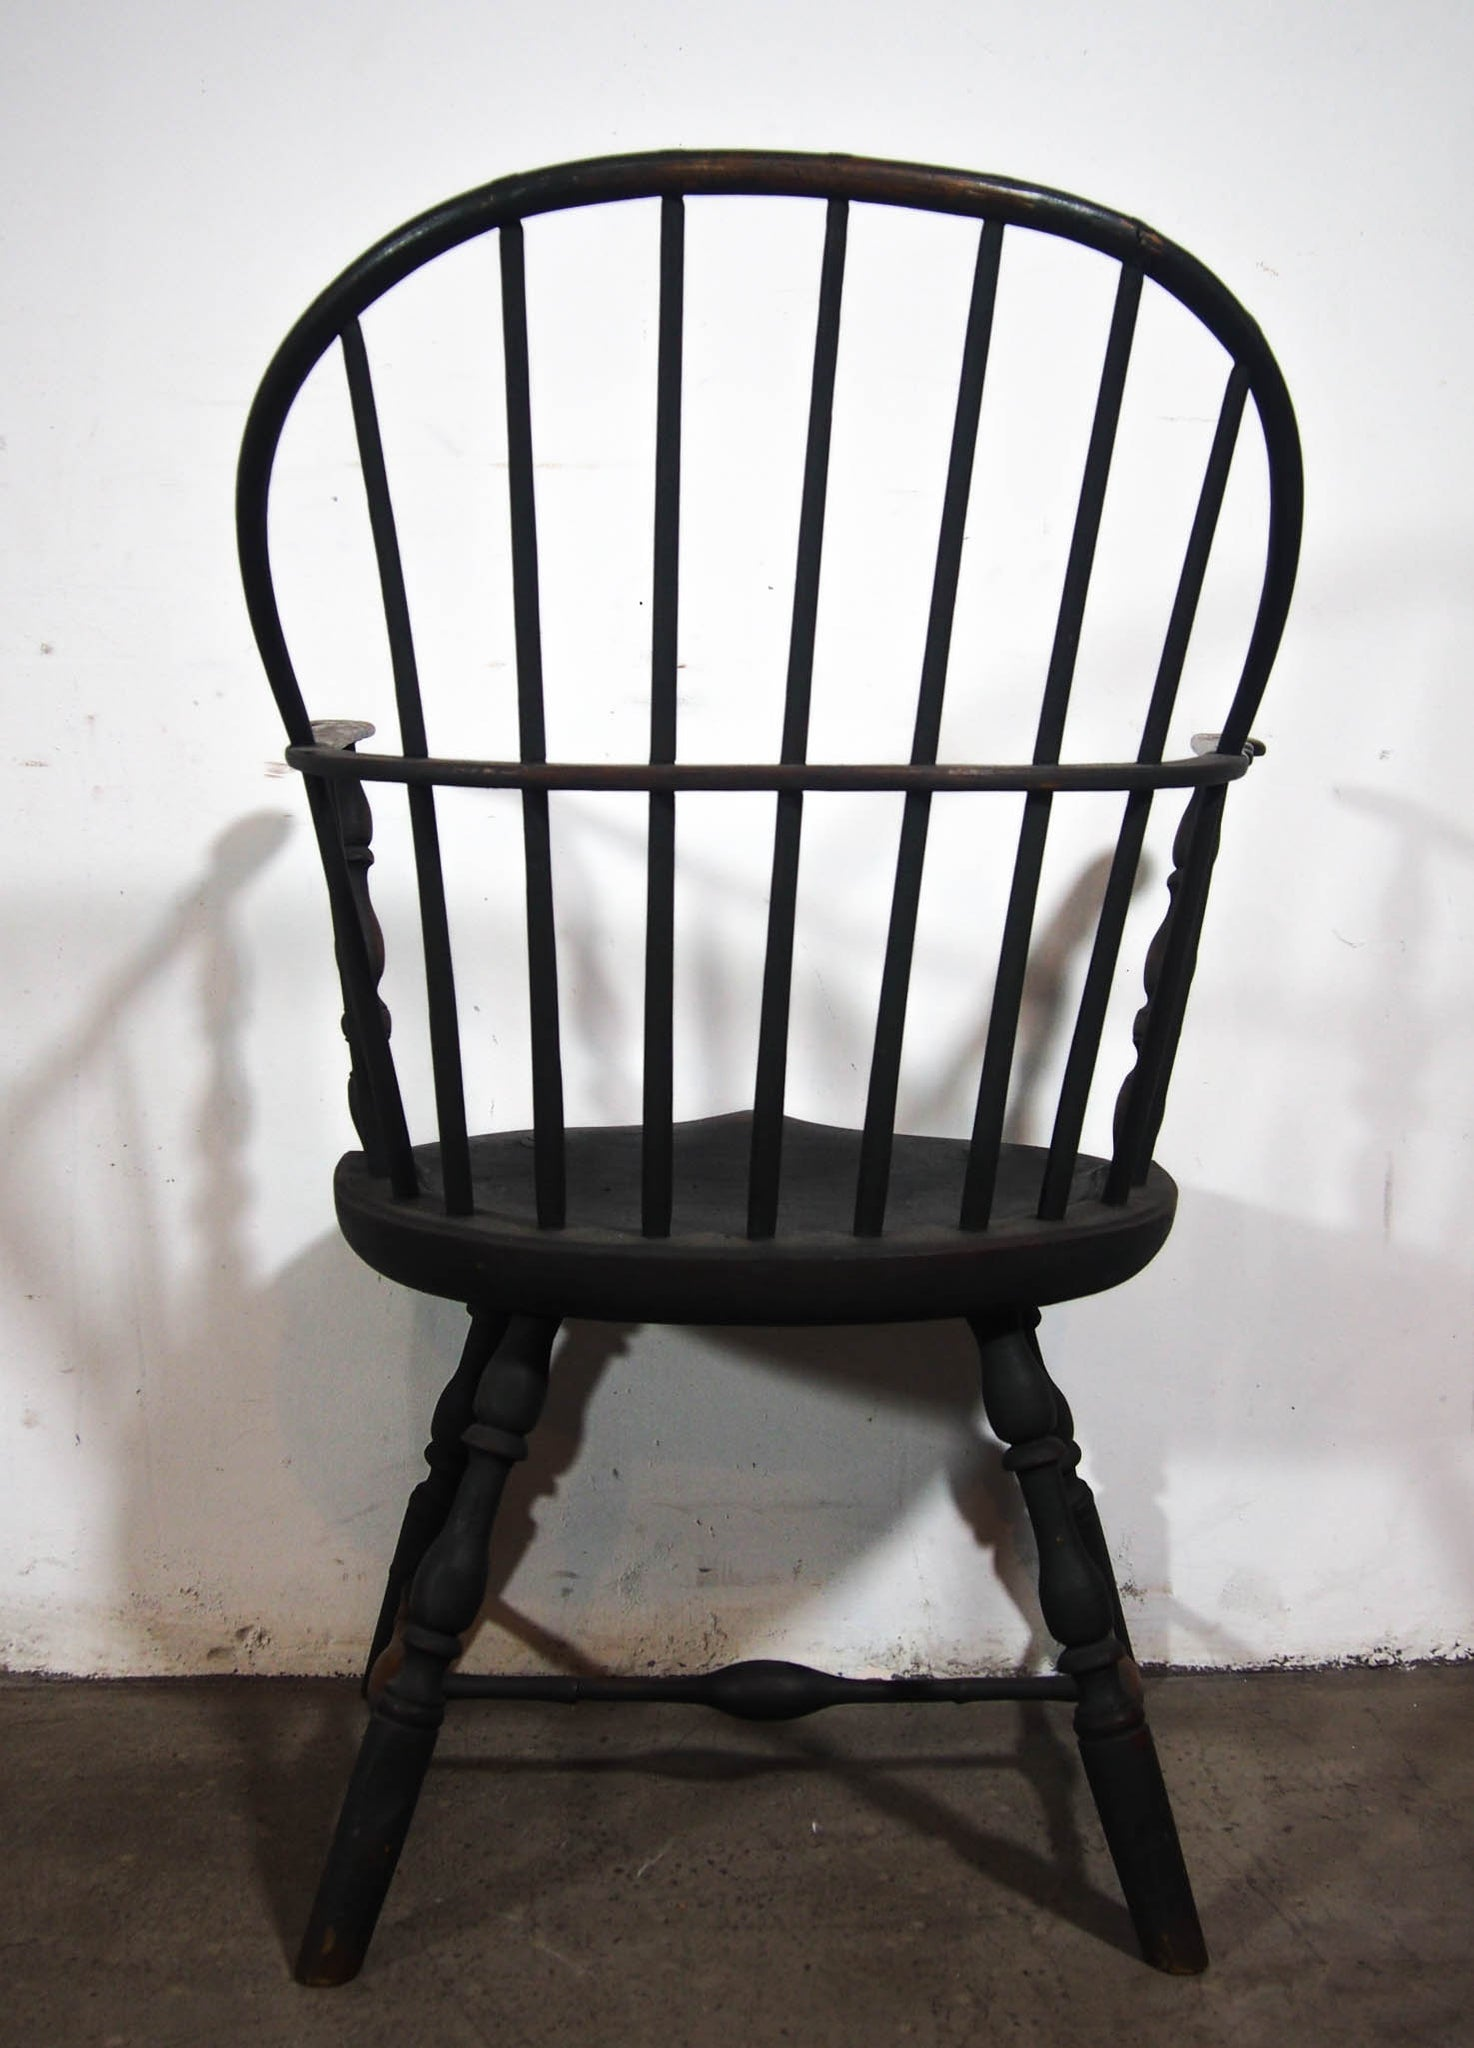 18th Century, Windsor Chair with Extended Arms and Sack Back from Peg Krupp Private Collection 18th Cent. Windsor Chair #2